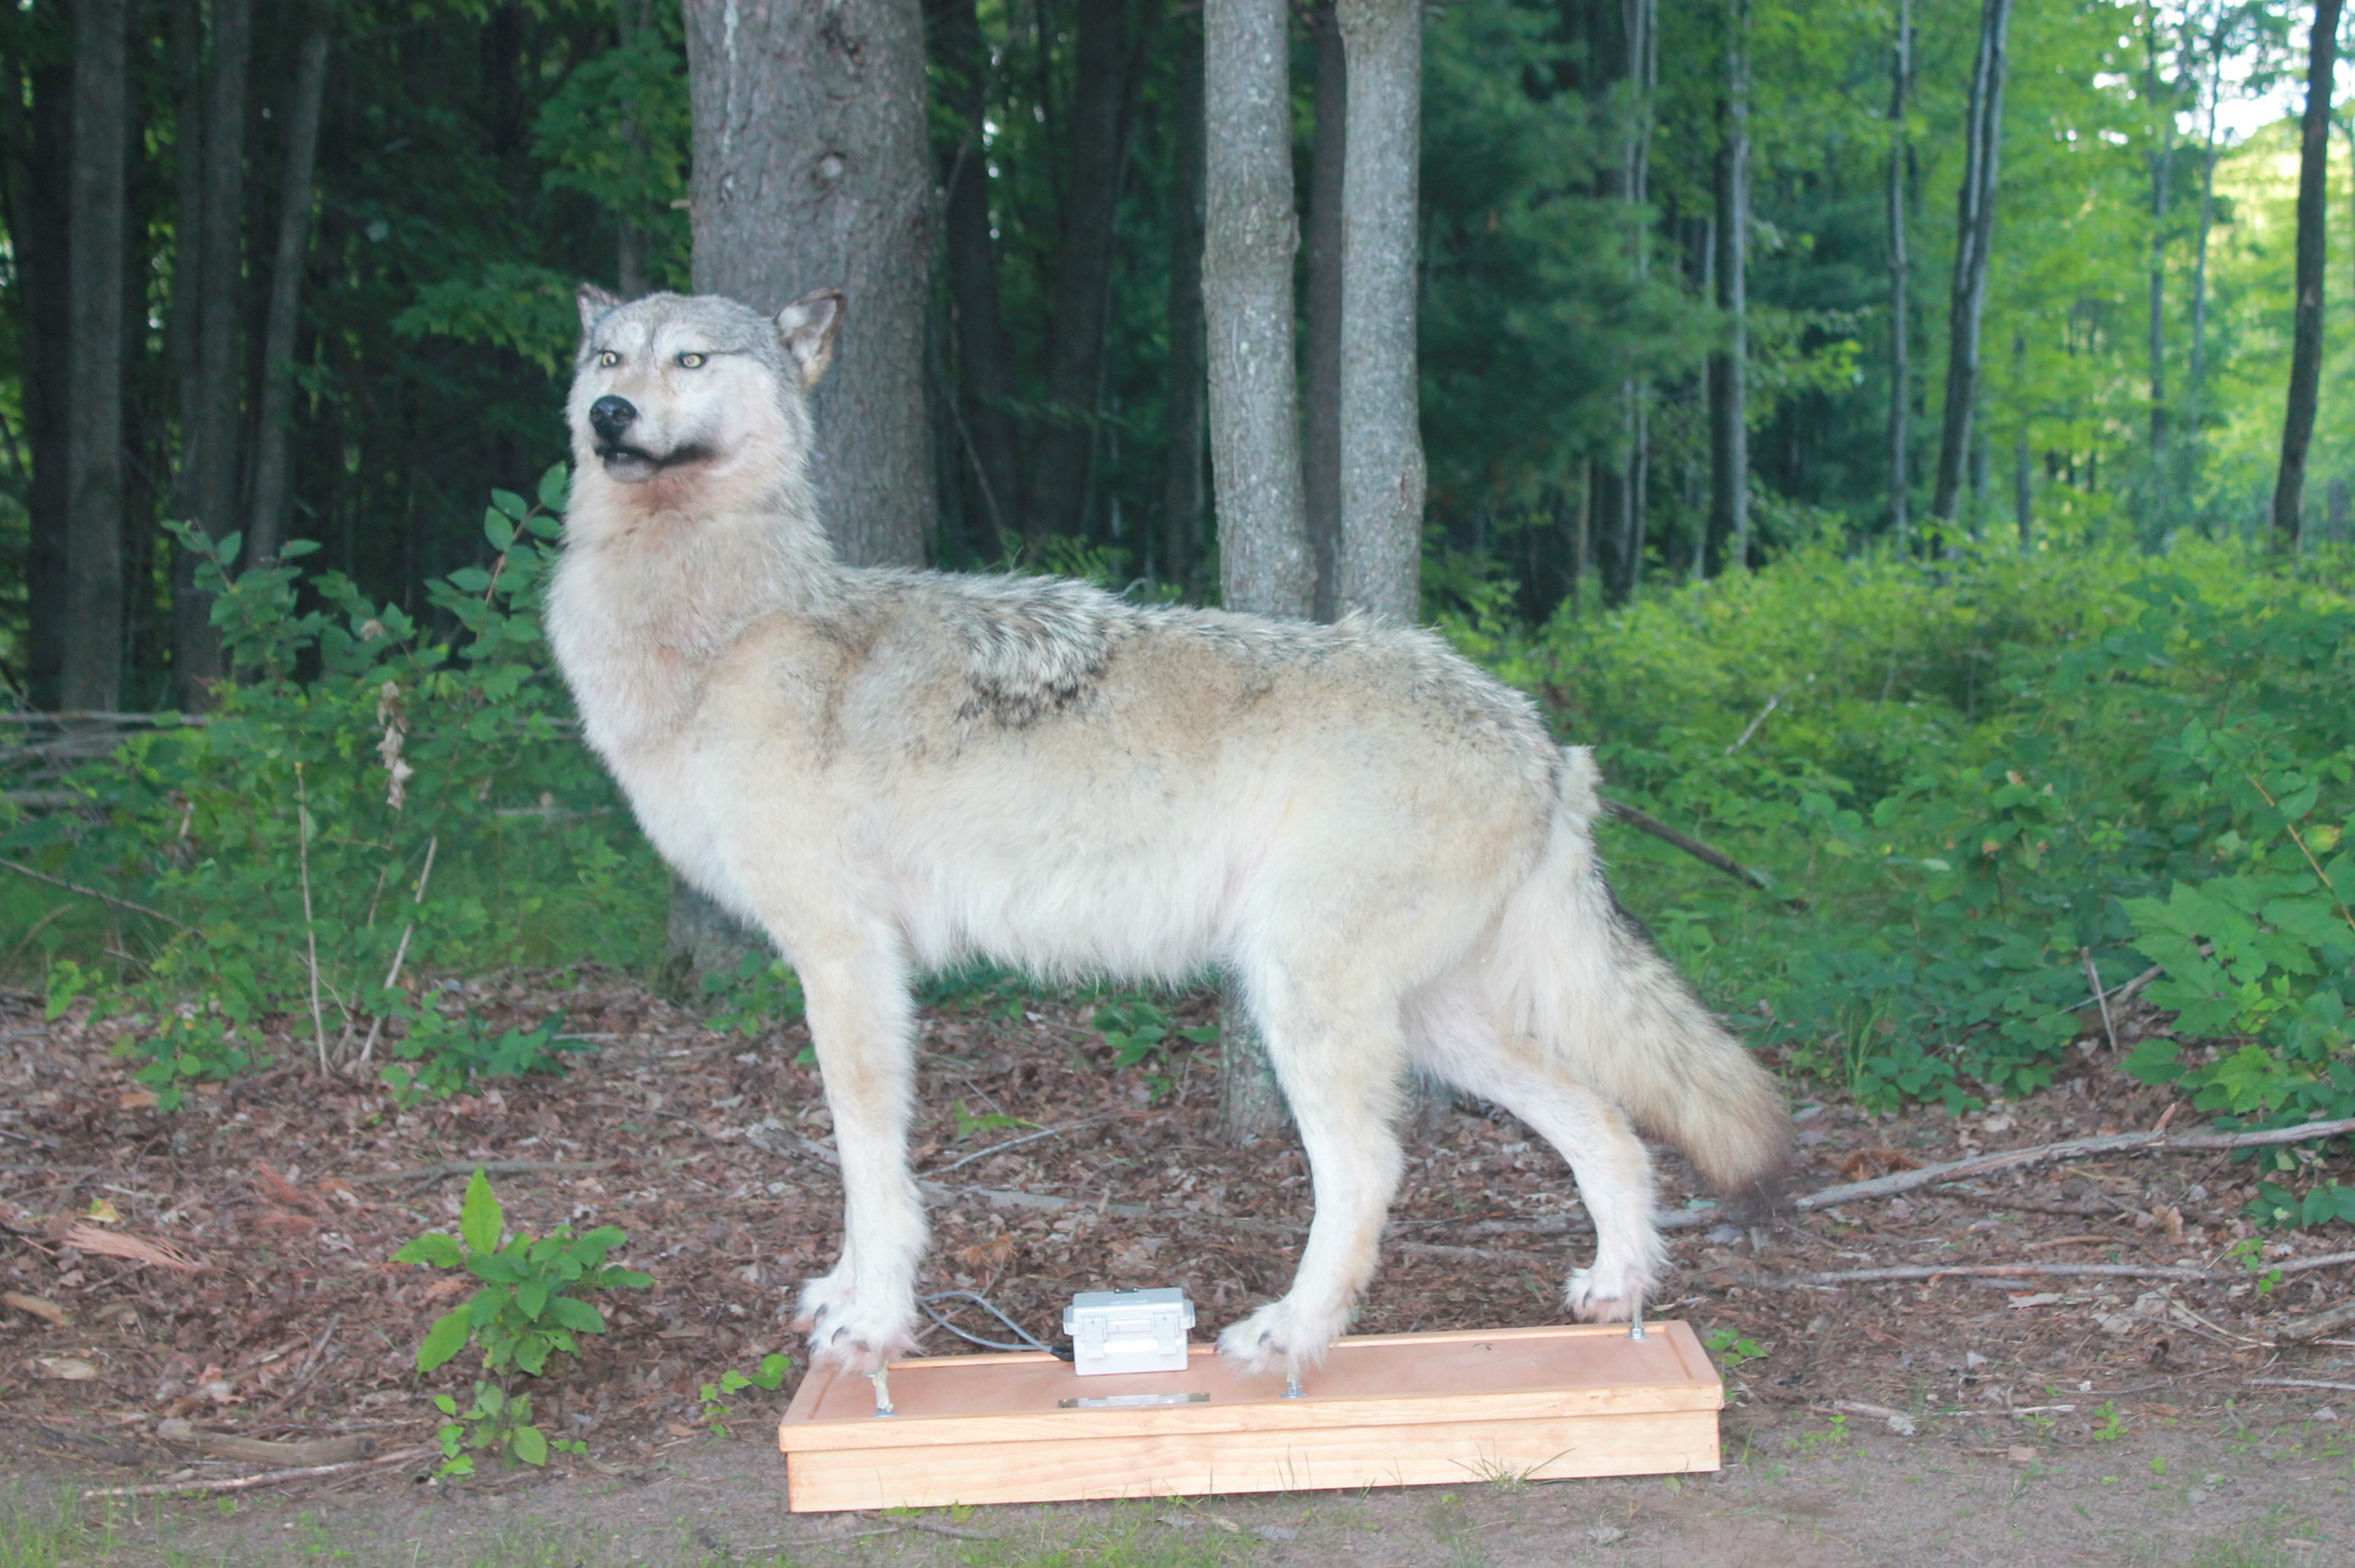 wolf in woods for robotic decoy image of wolf mount